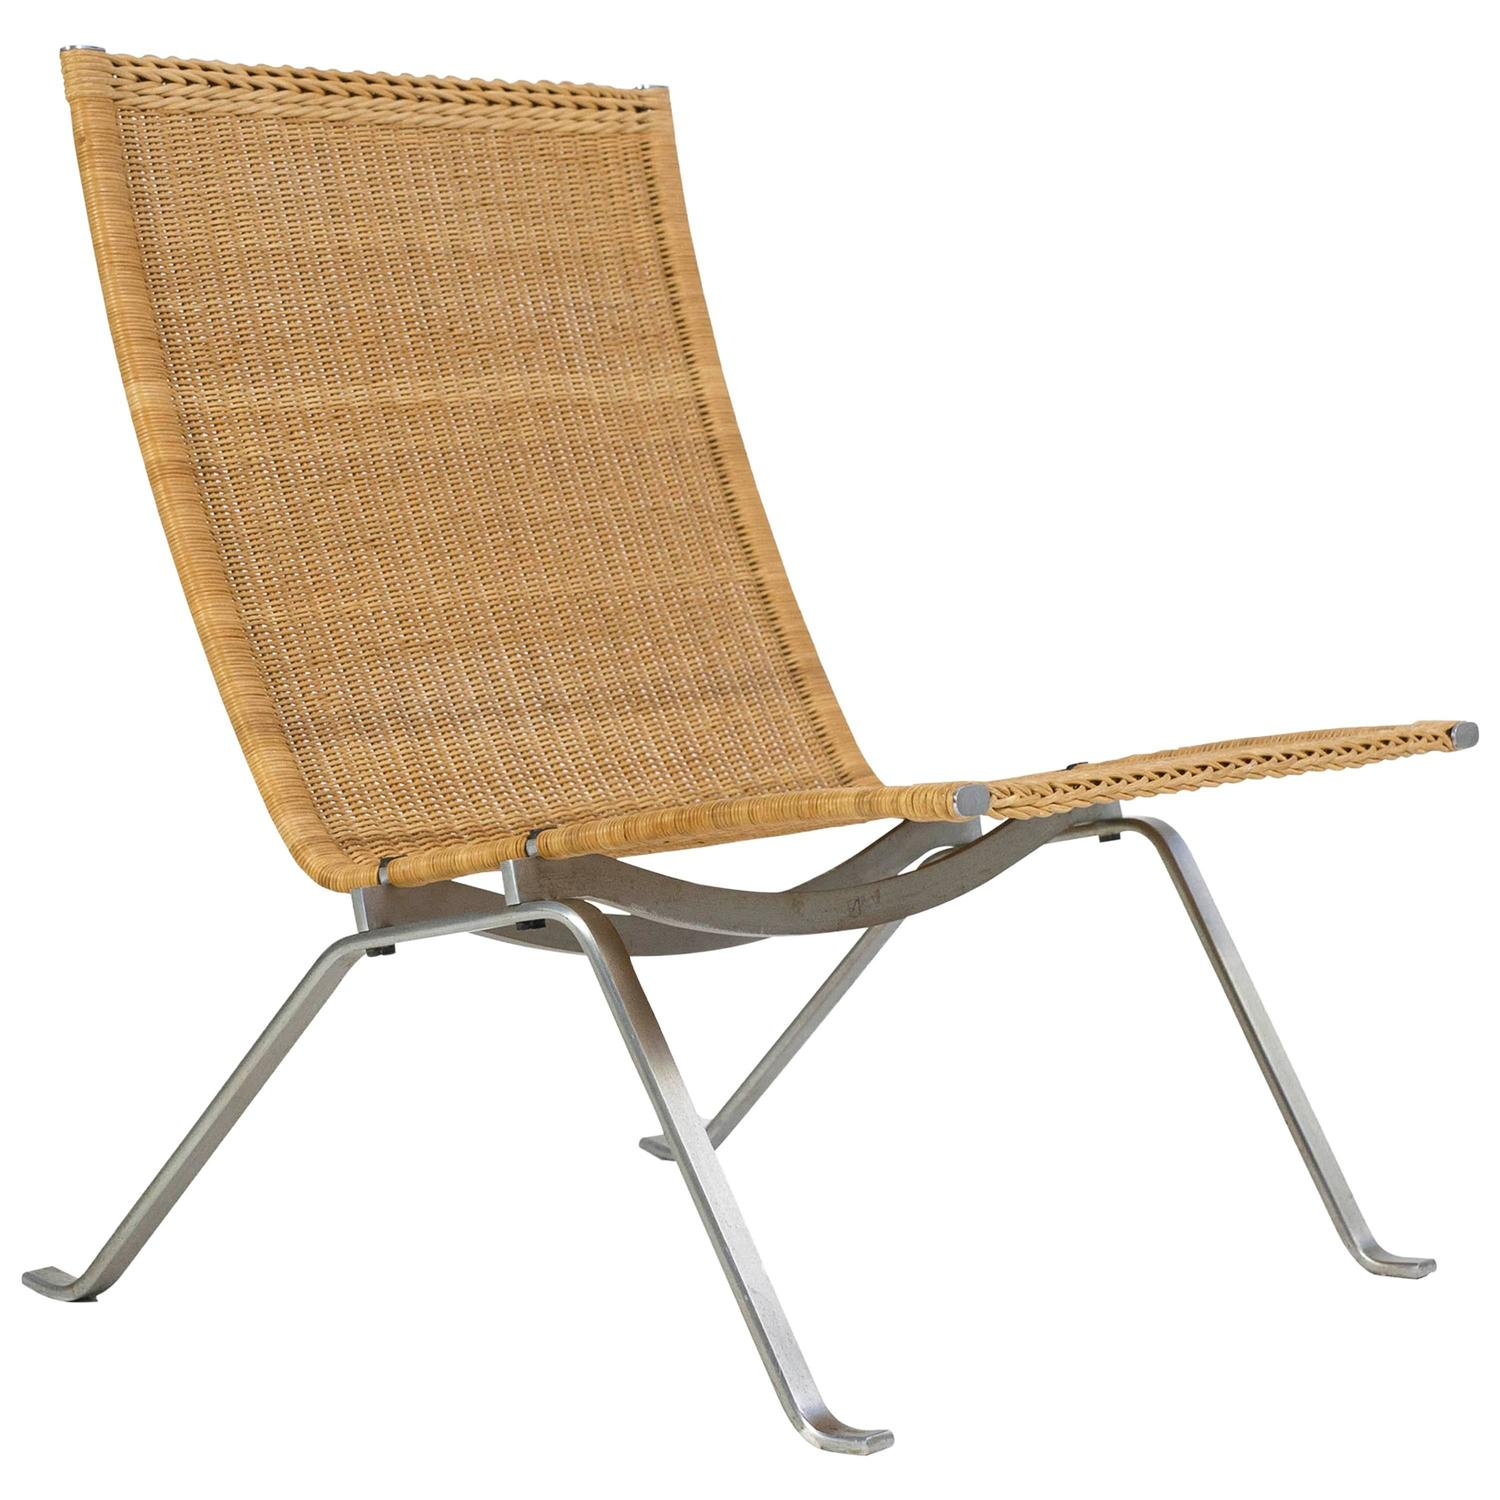 Pk22 Chair Poul Kjærholm Pk22 Wicker Chair E Kold Christensen For